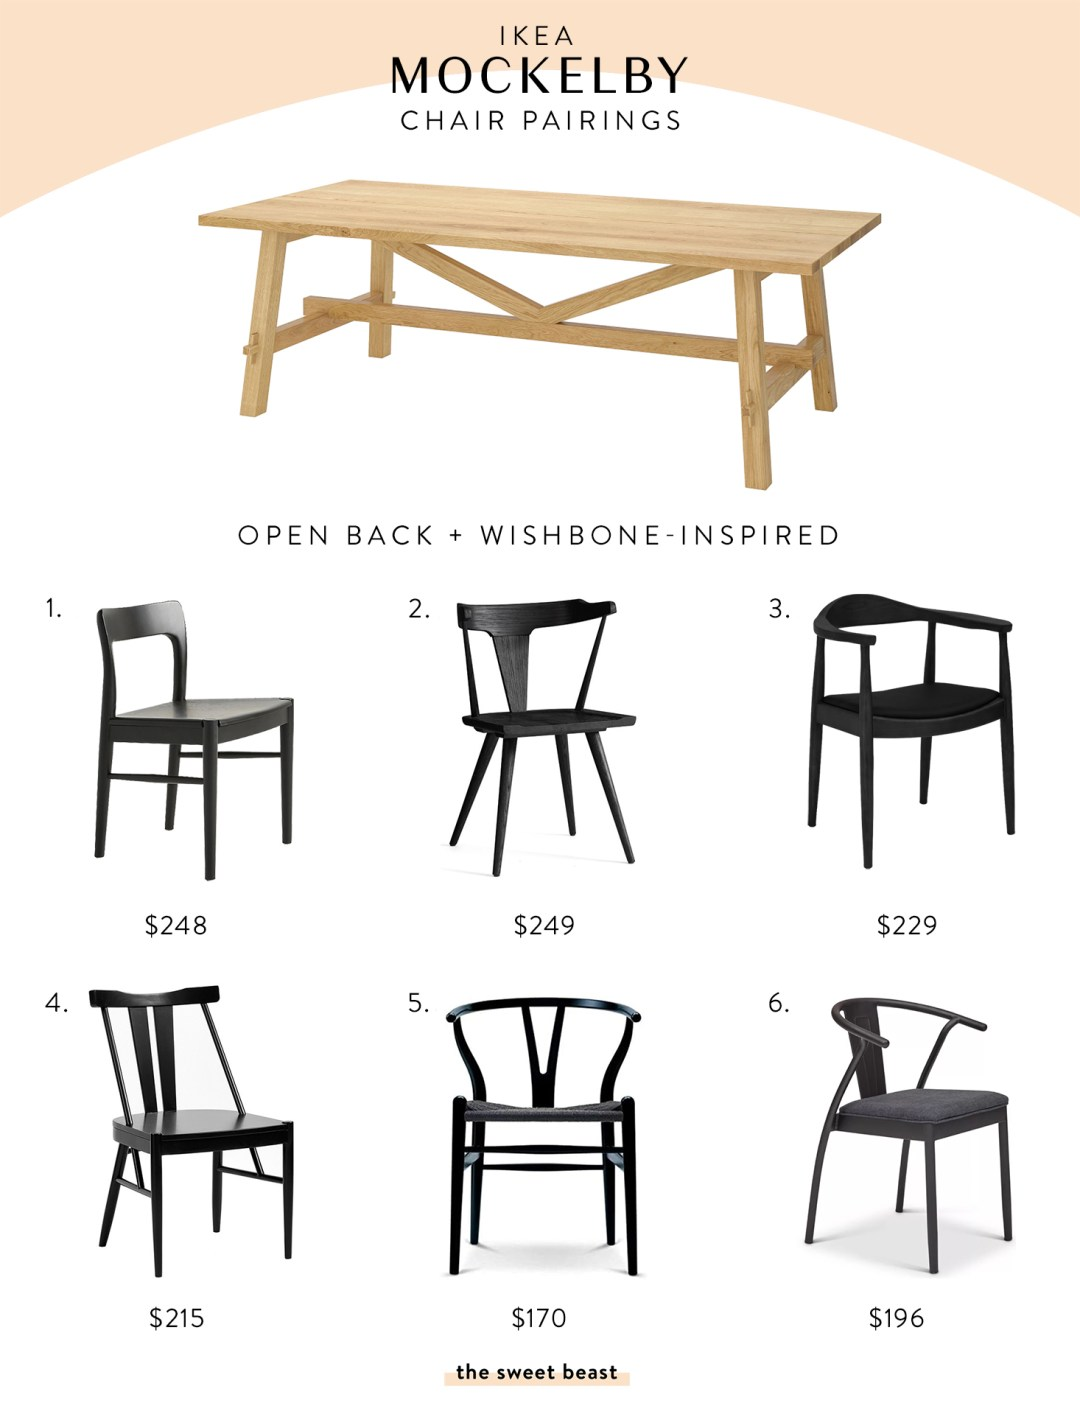 ikea mockelby black wishbone dining chair pairings